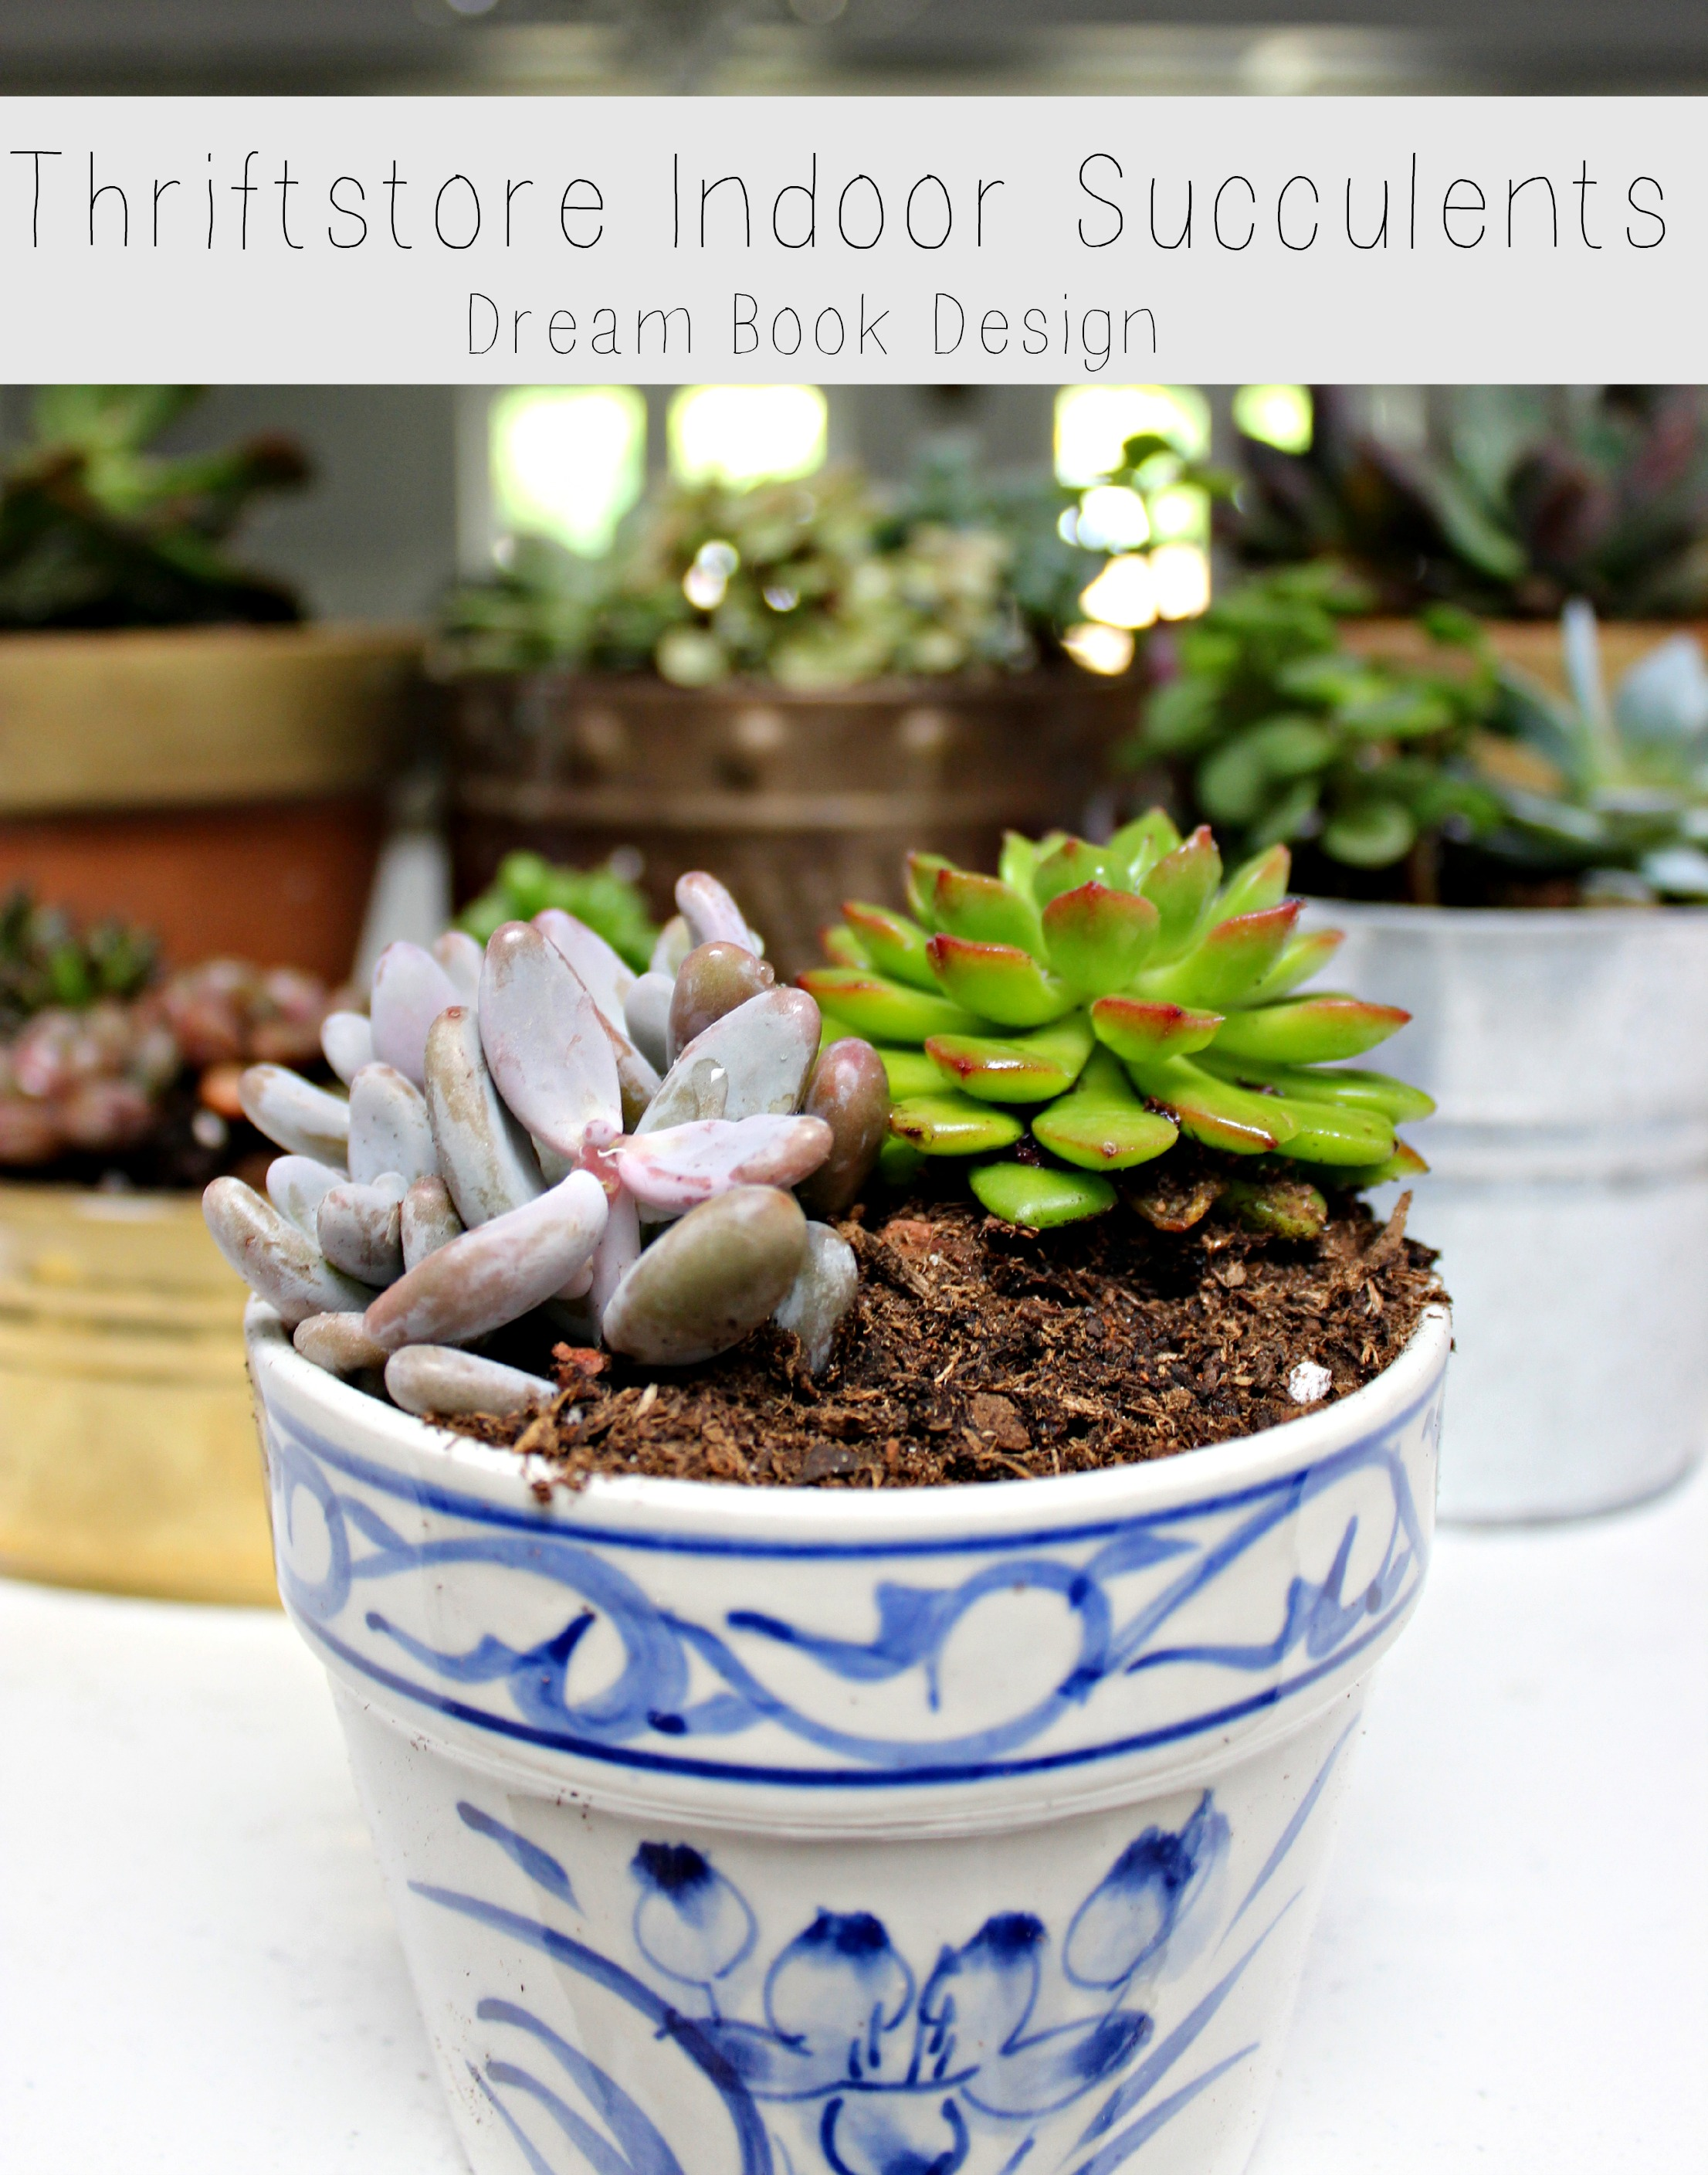 Thrift store indoor succulents dream book design for How to keep succulents alive indoors